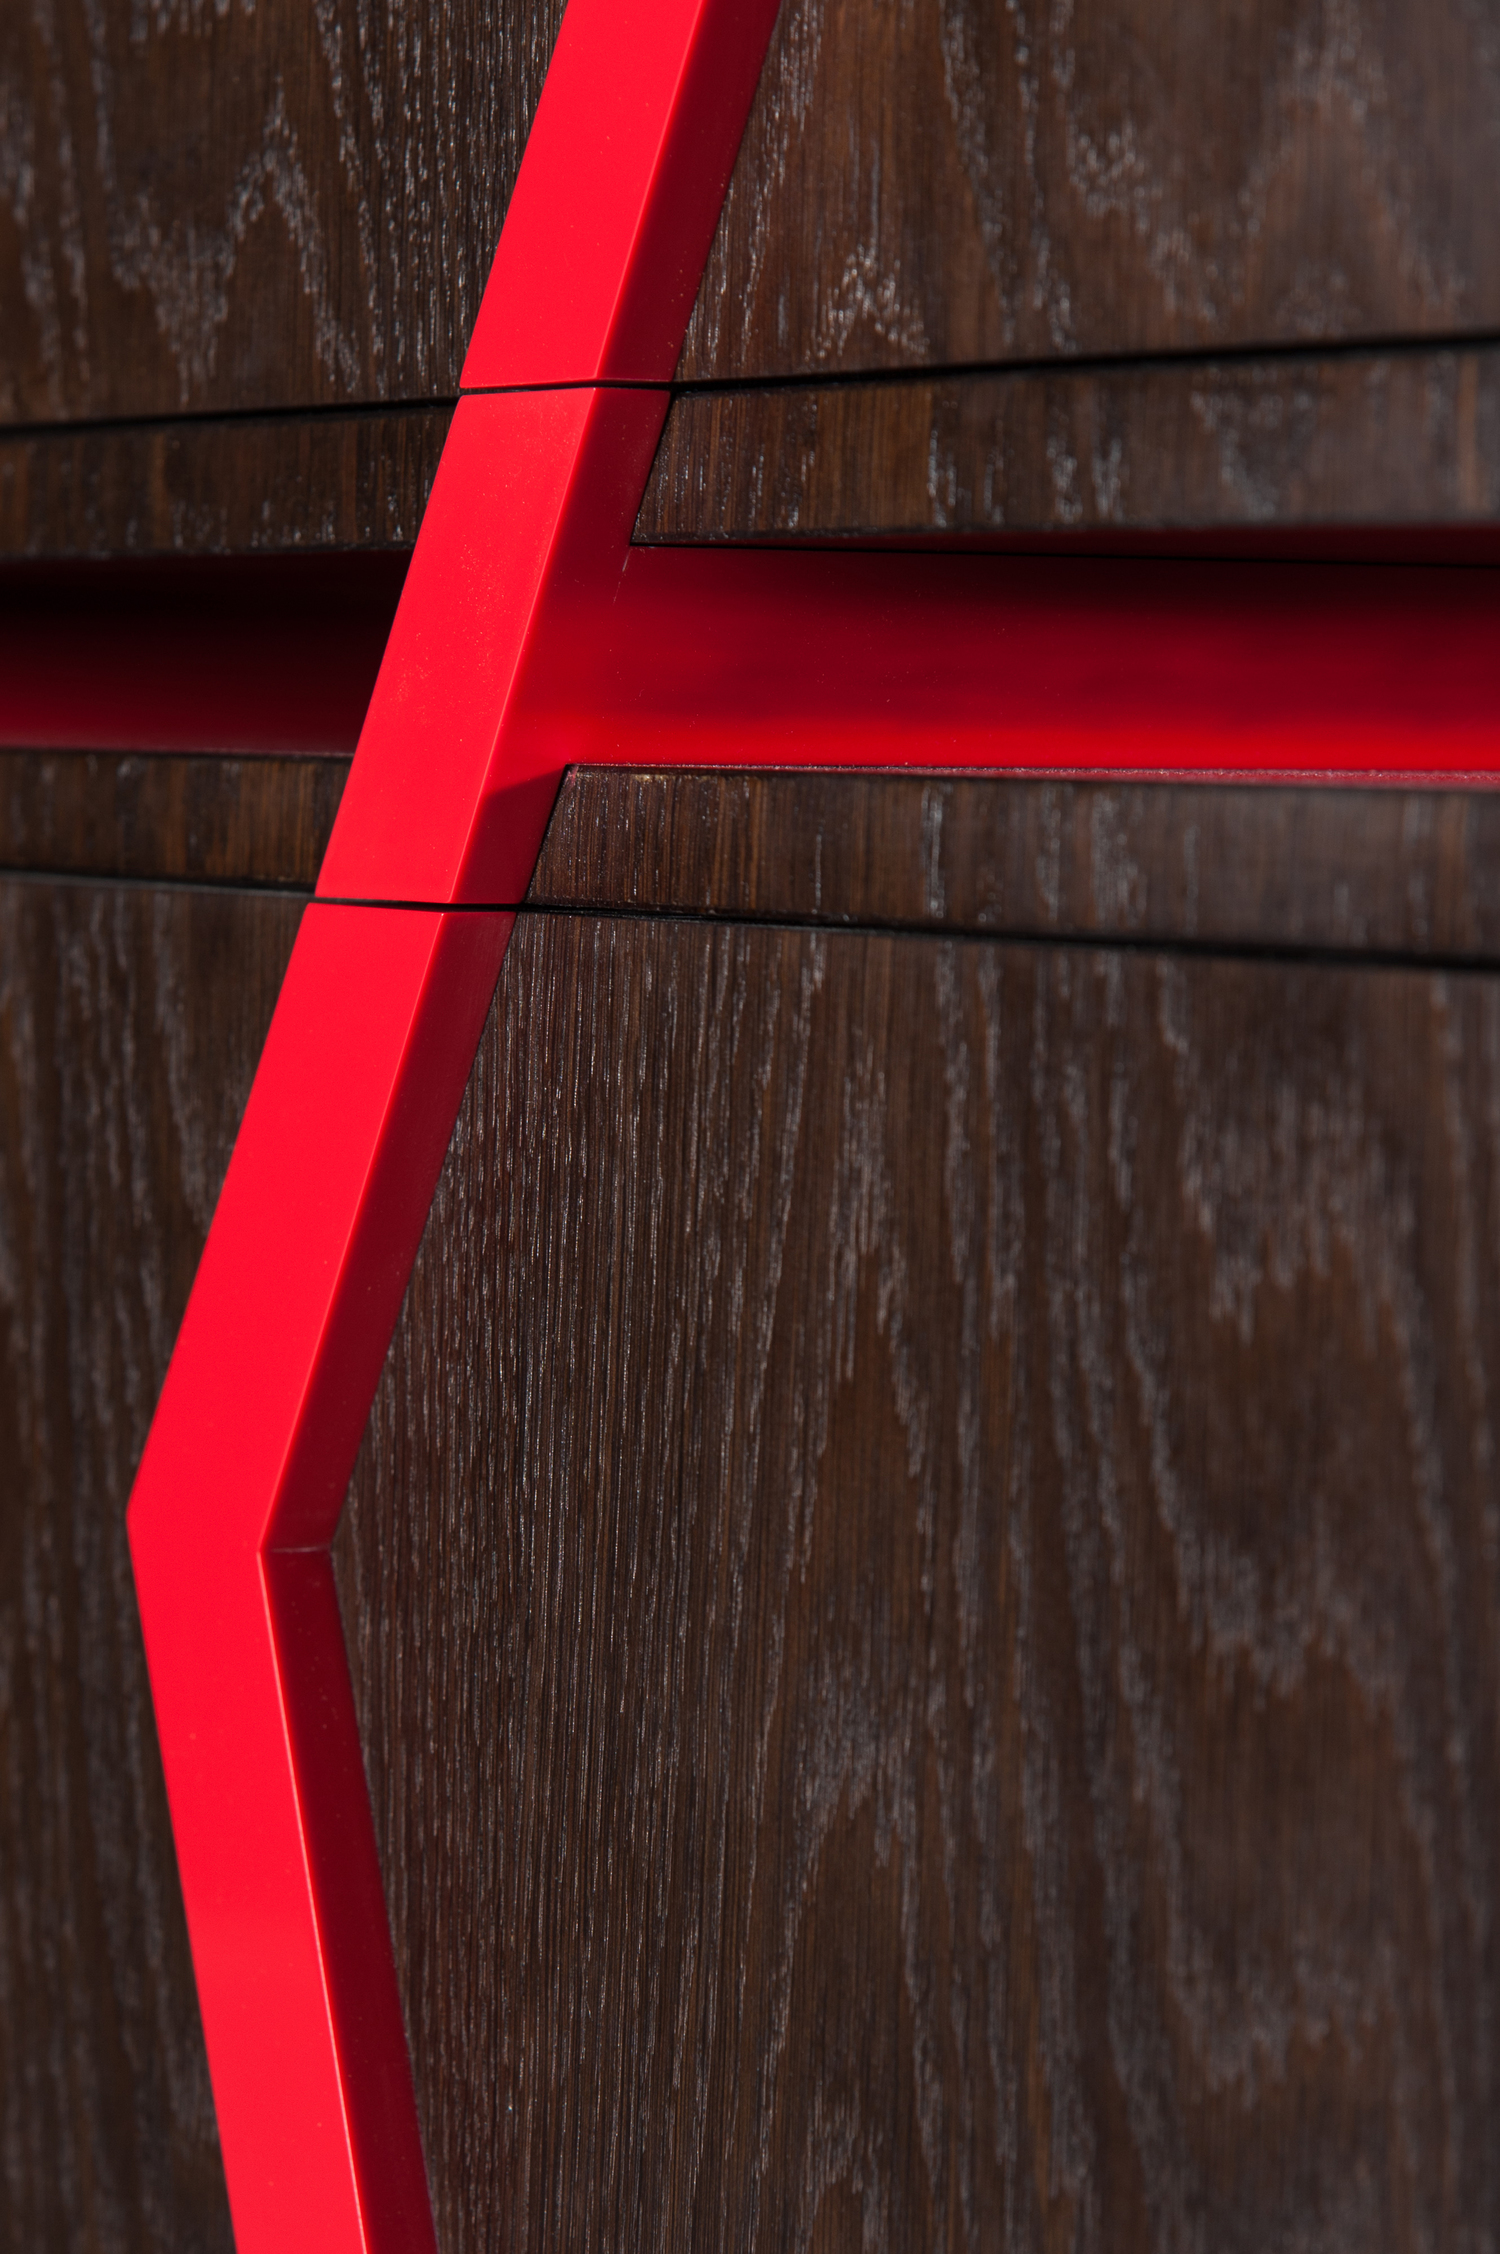 Detail of the Pop/Deco Chest - A close up view of the intersection between the drawer and the Corian detailing